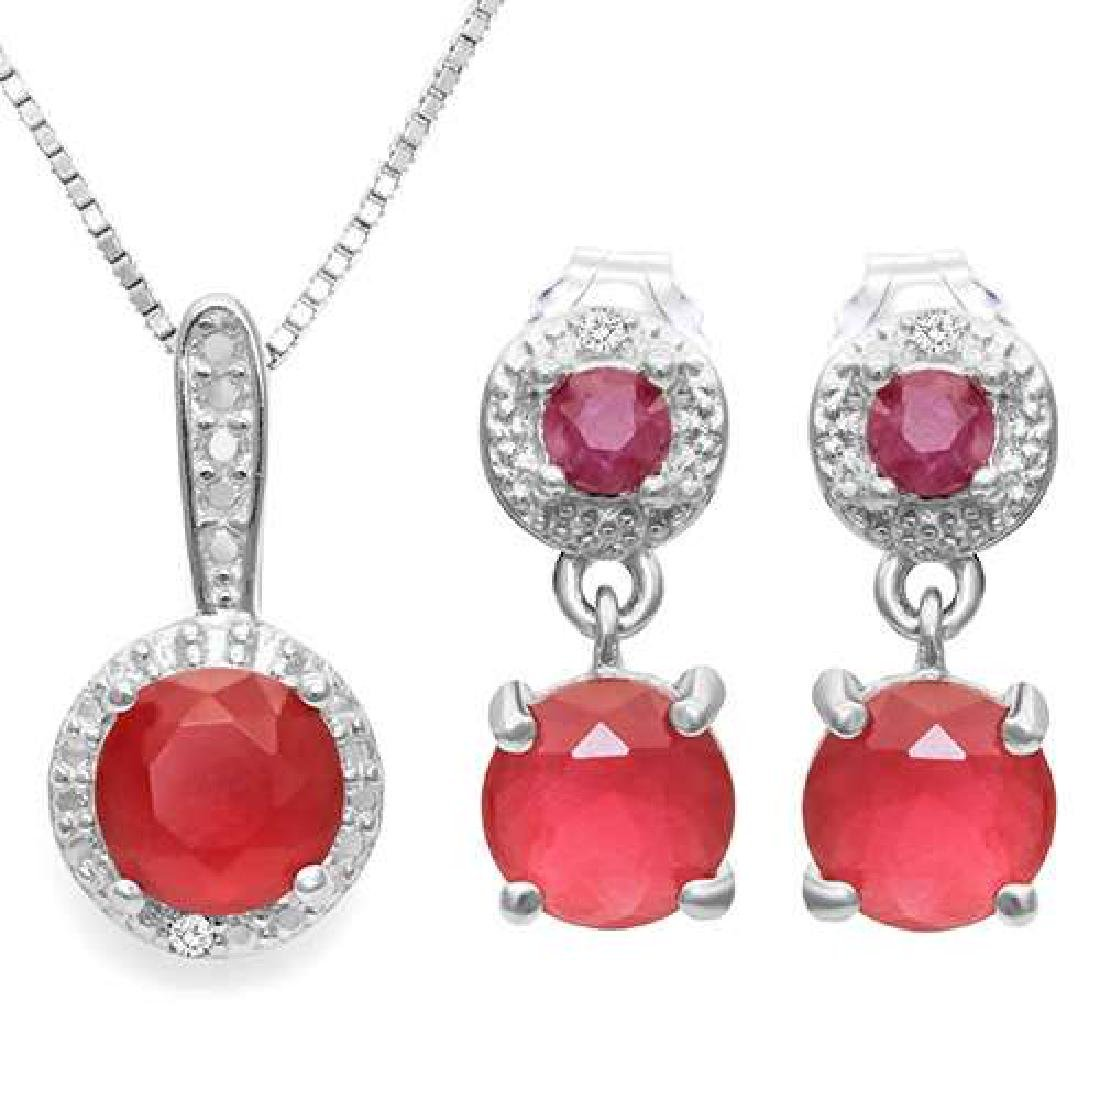 CREATED 2.77 CTW RUBY 925 STERLING SILVER SET